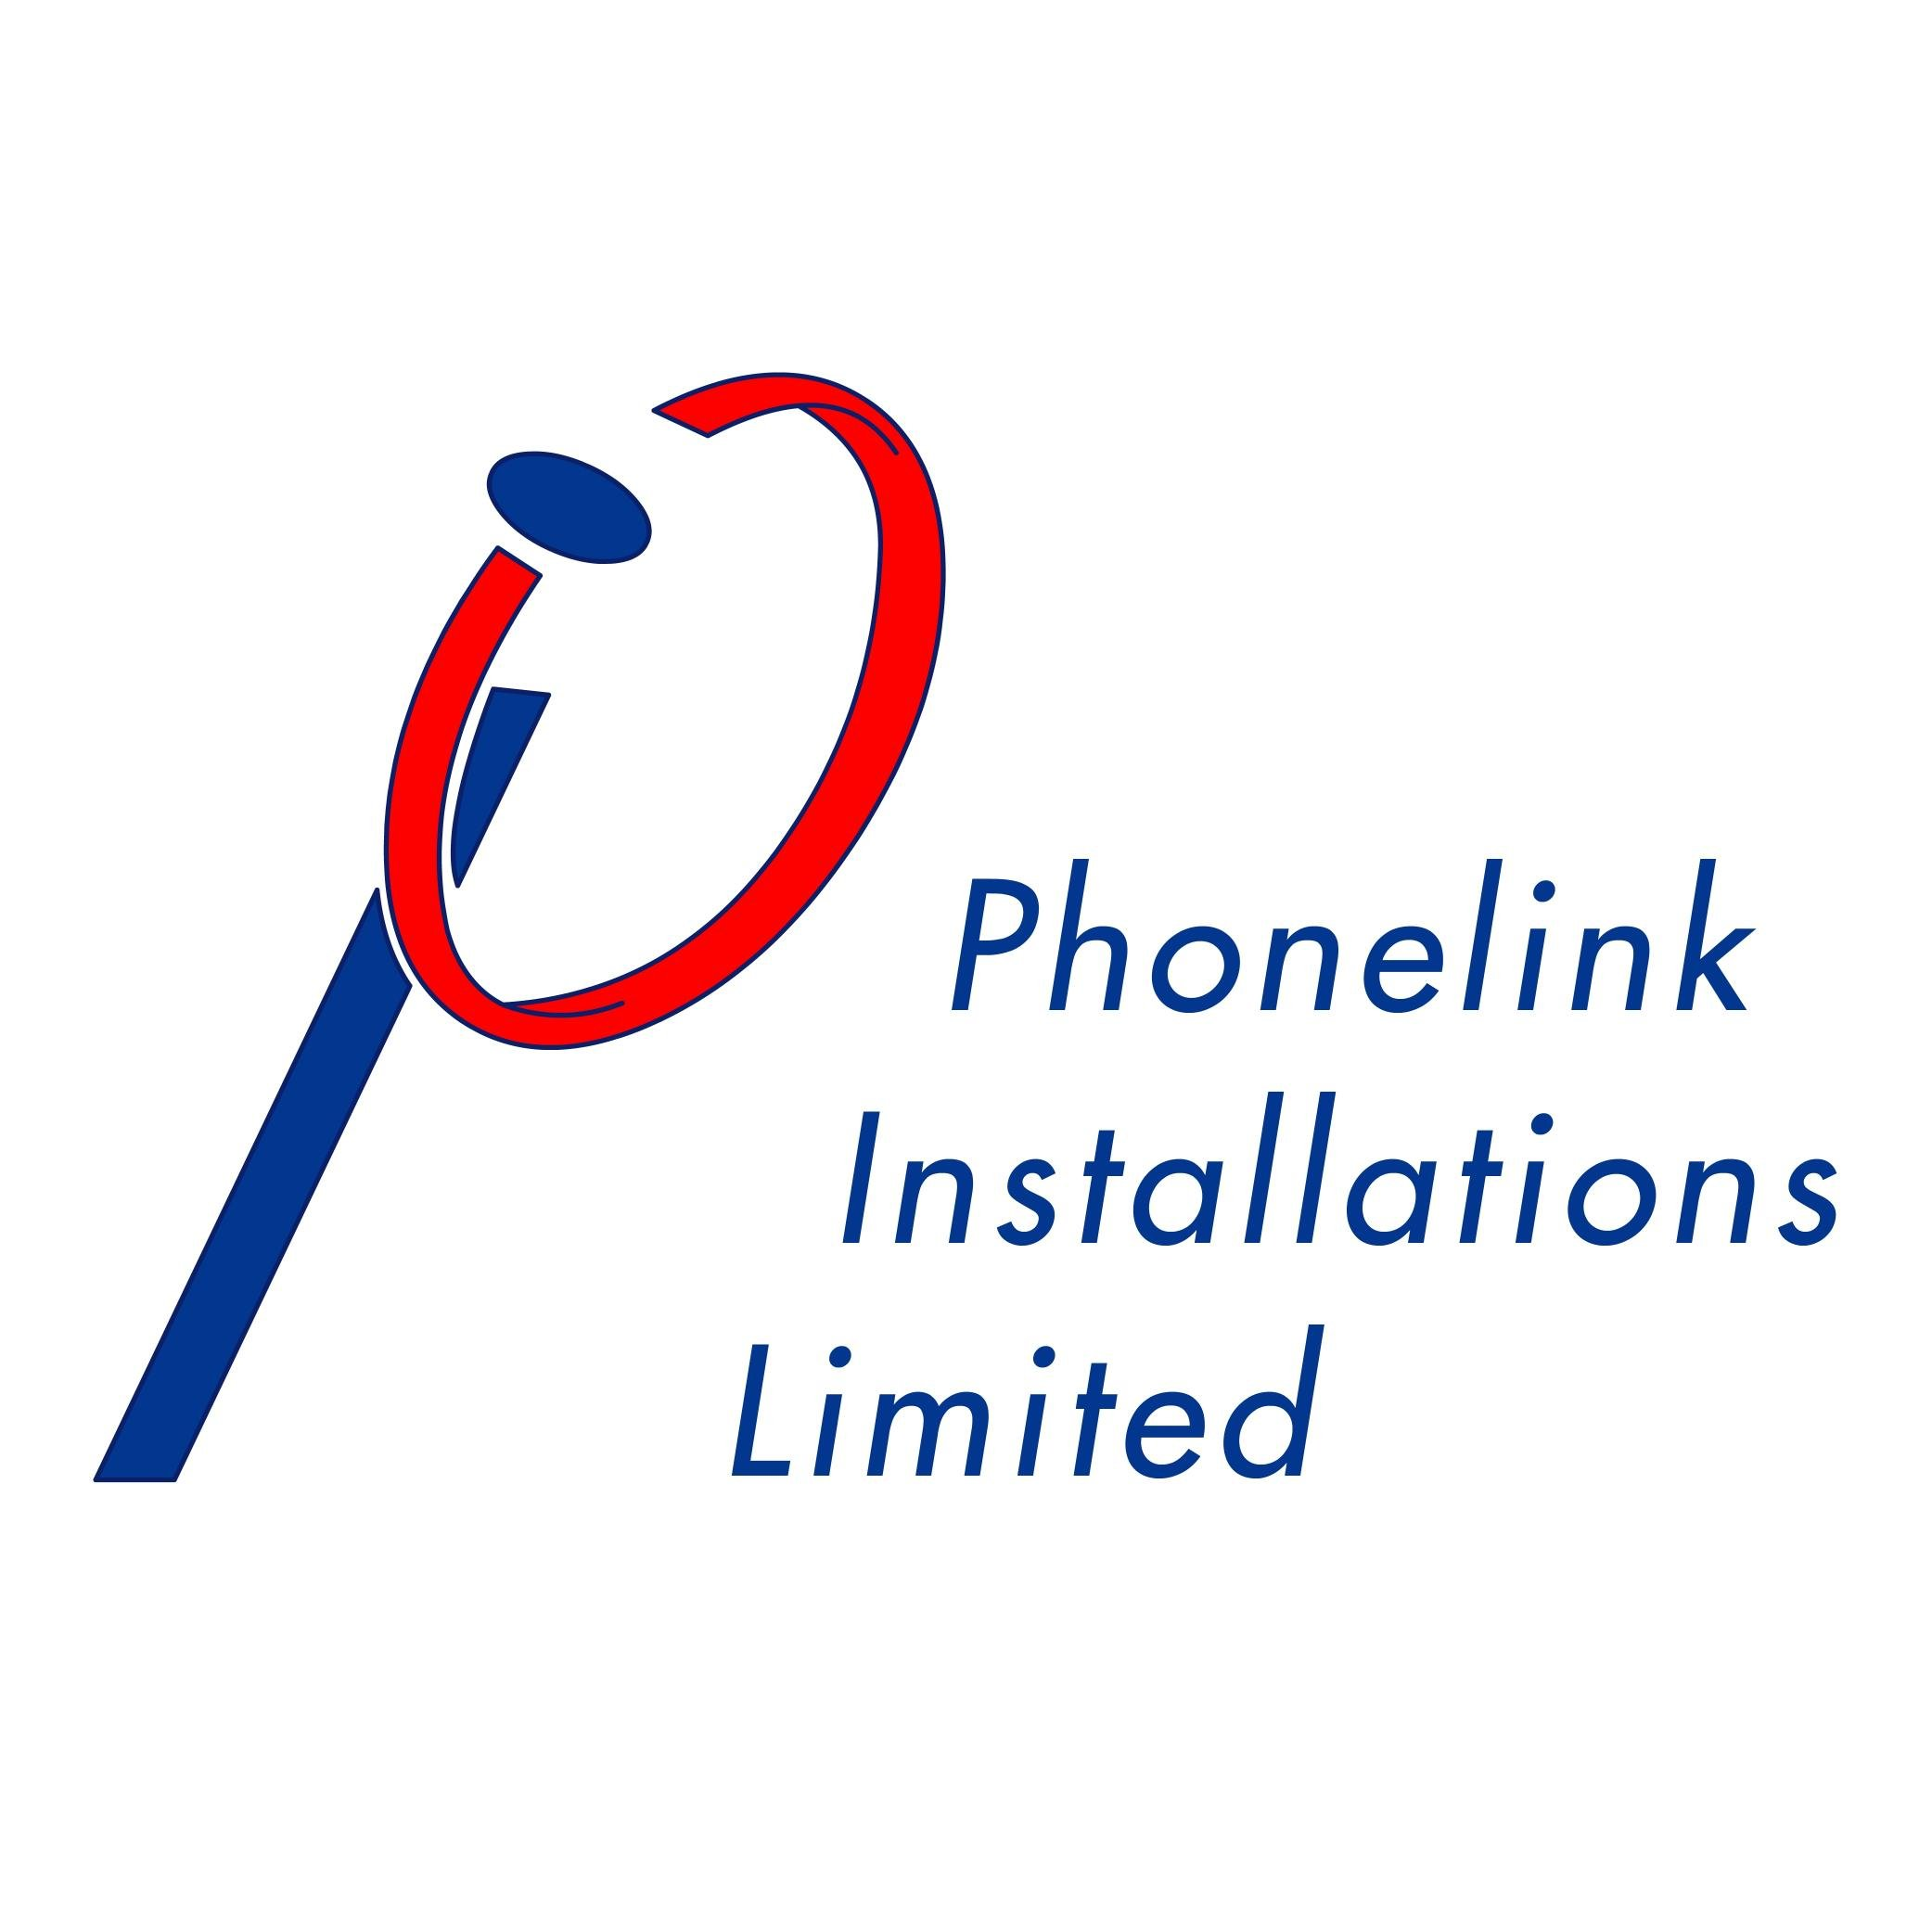 phonelink installations ltd